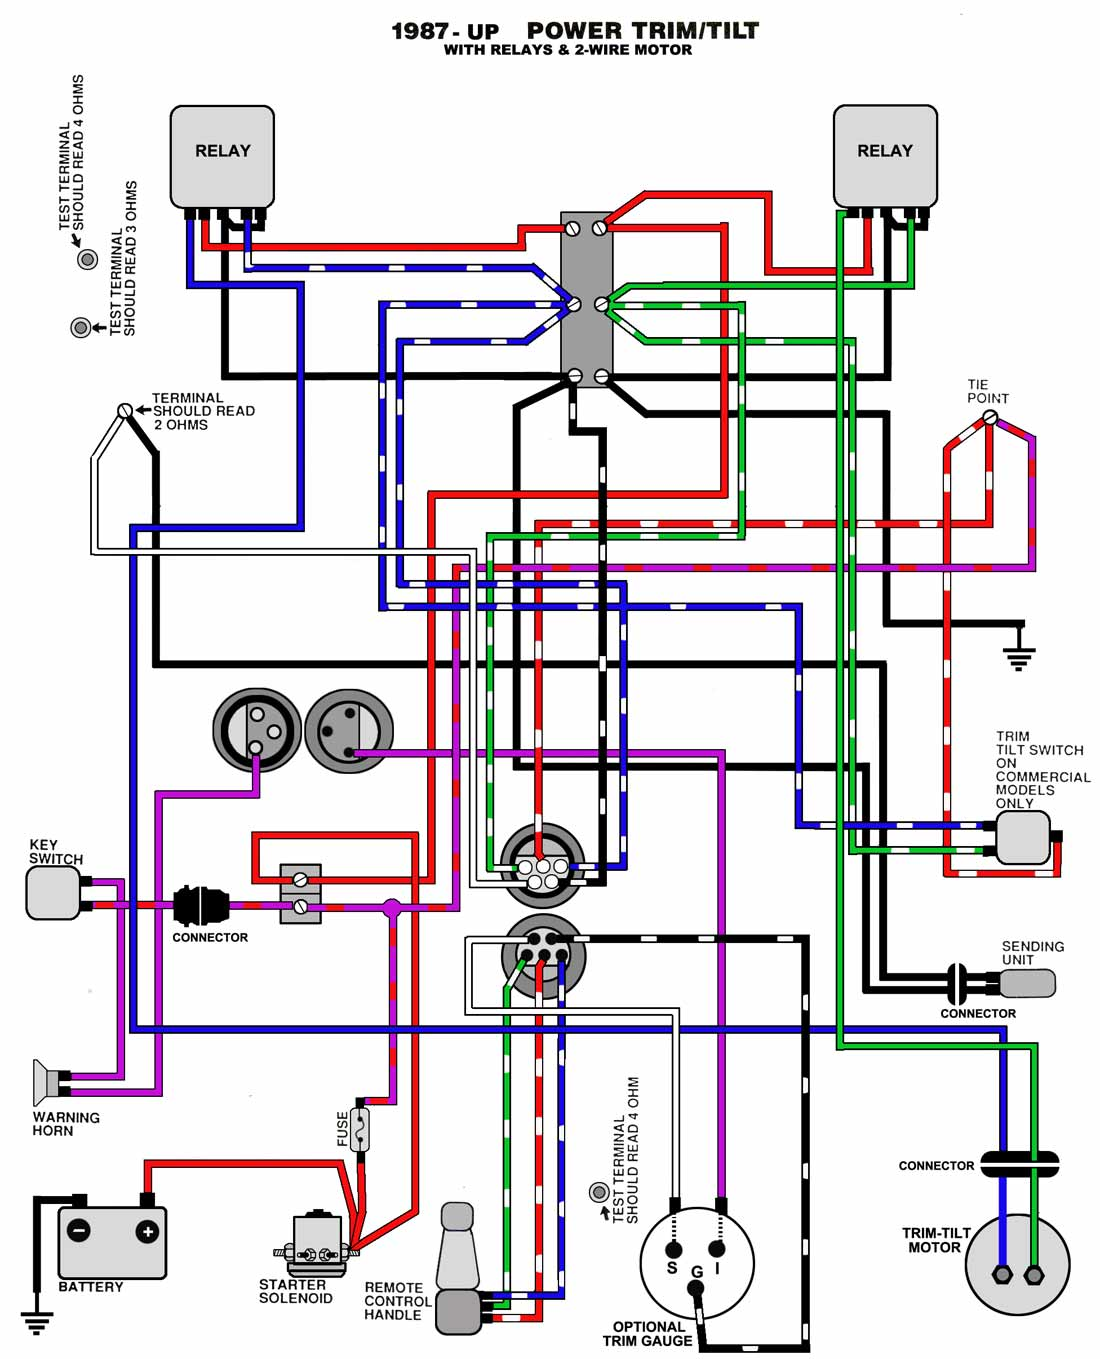 small resolution of power trim wiring diagram wiring diagram data schema mercury power trim wiring diagrams mercury power trim wiring diagram